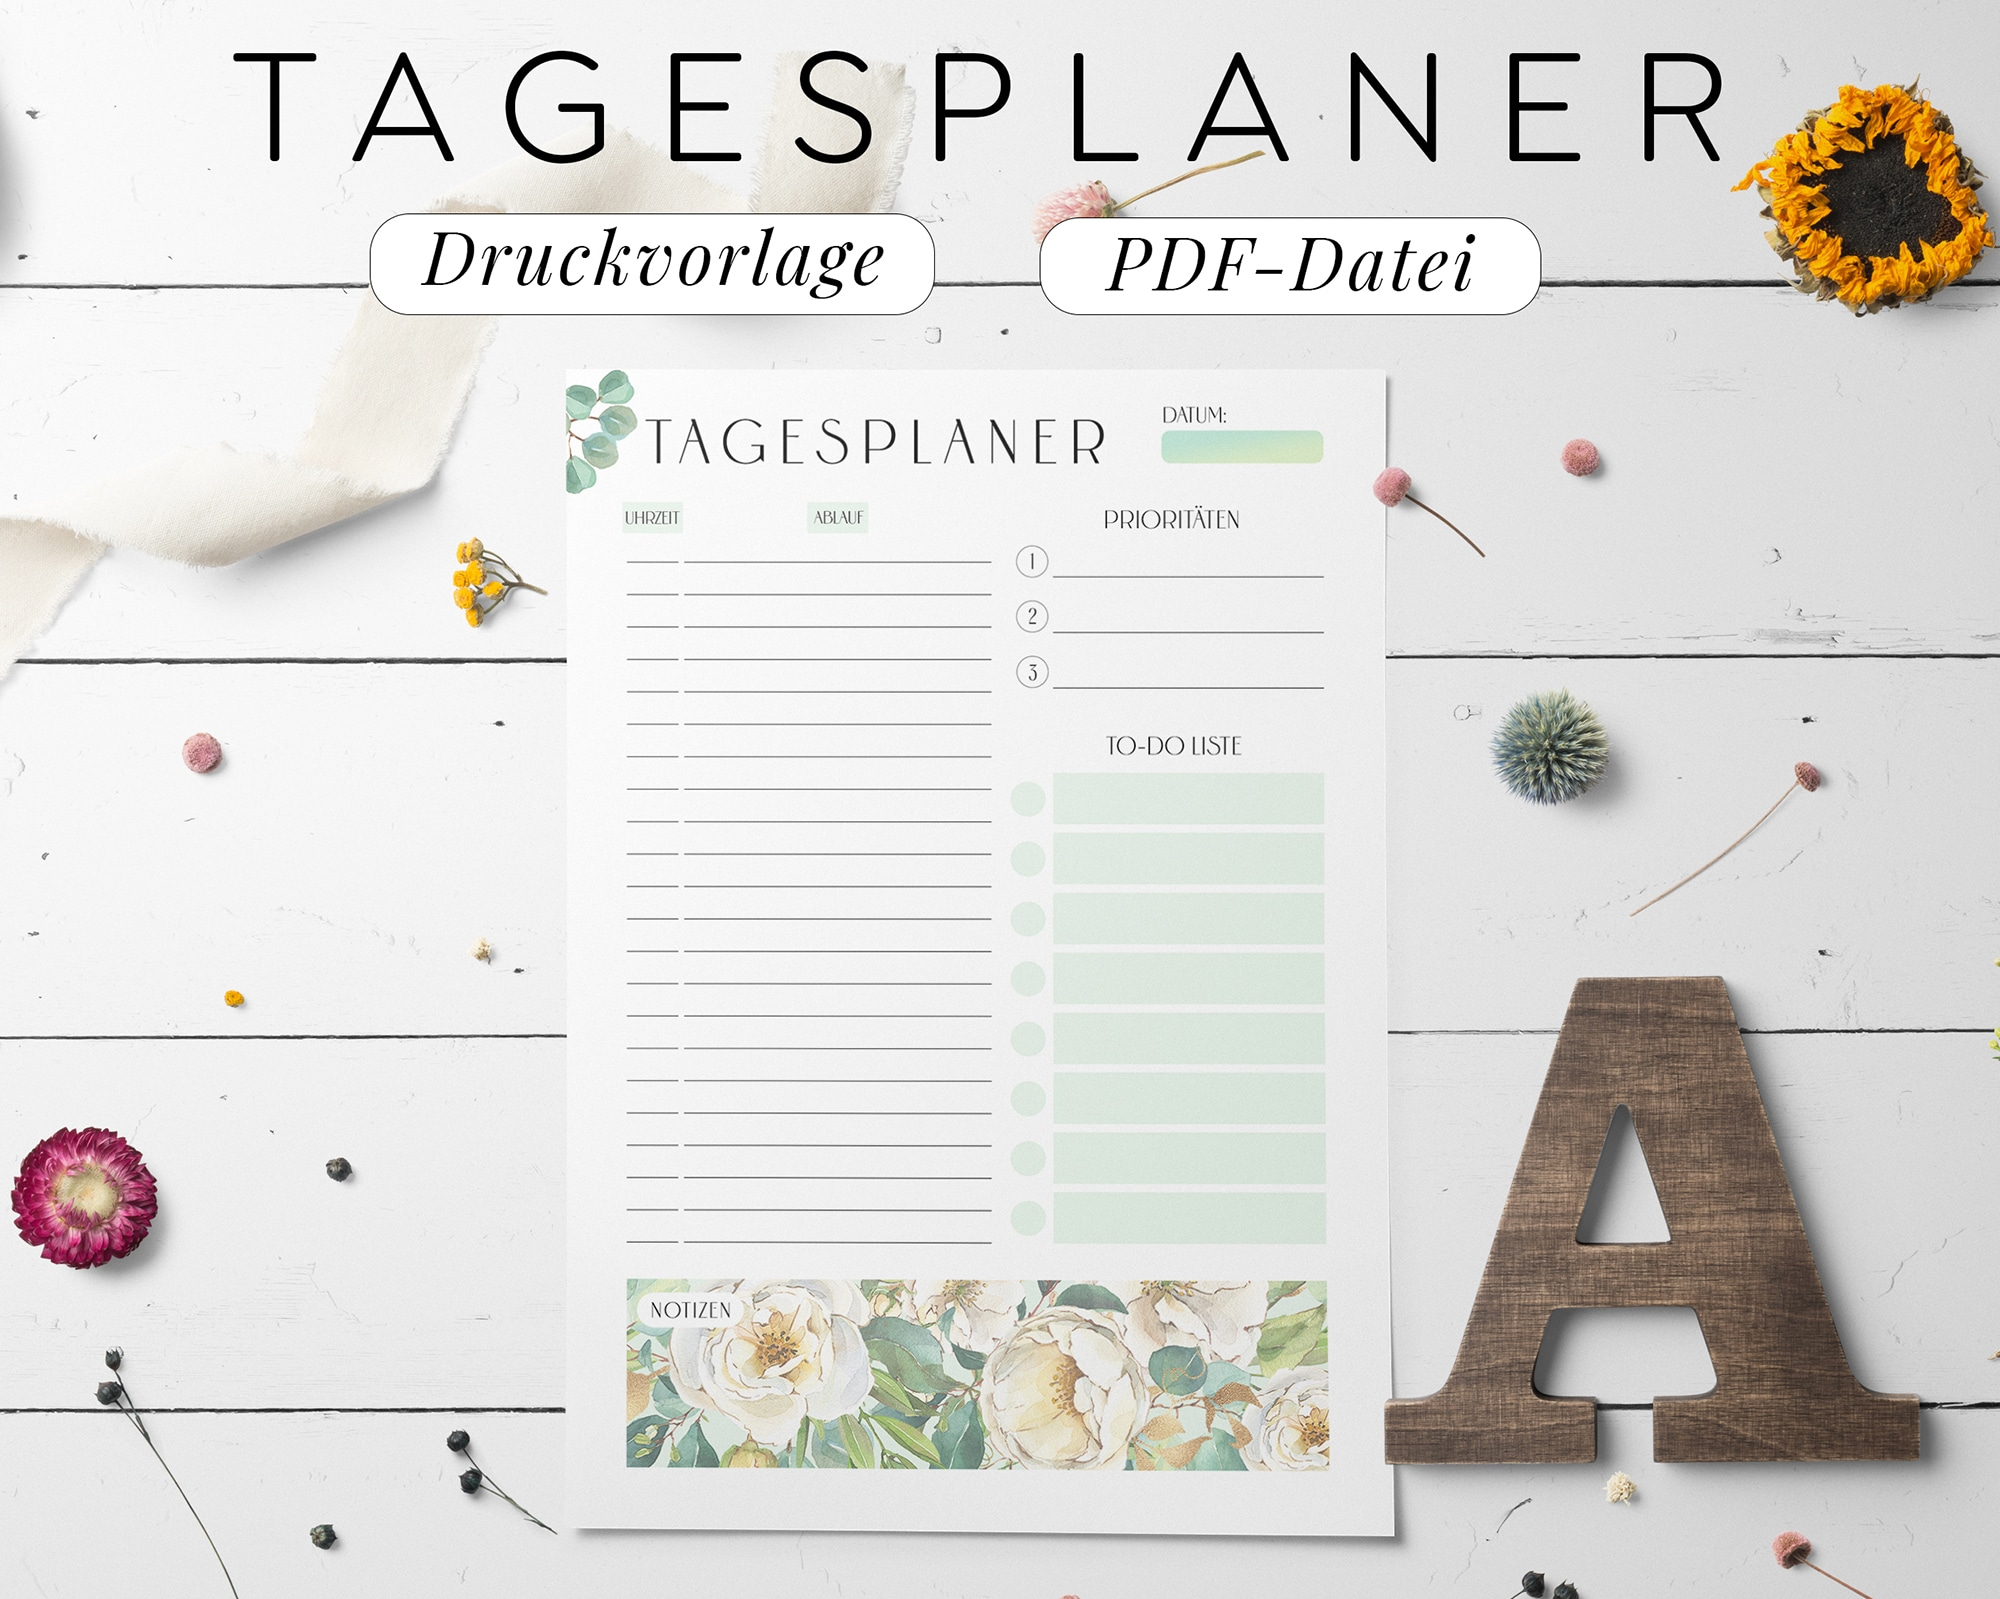 Tagesplaner Digitale Vorlage Download PDF